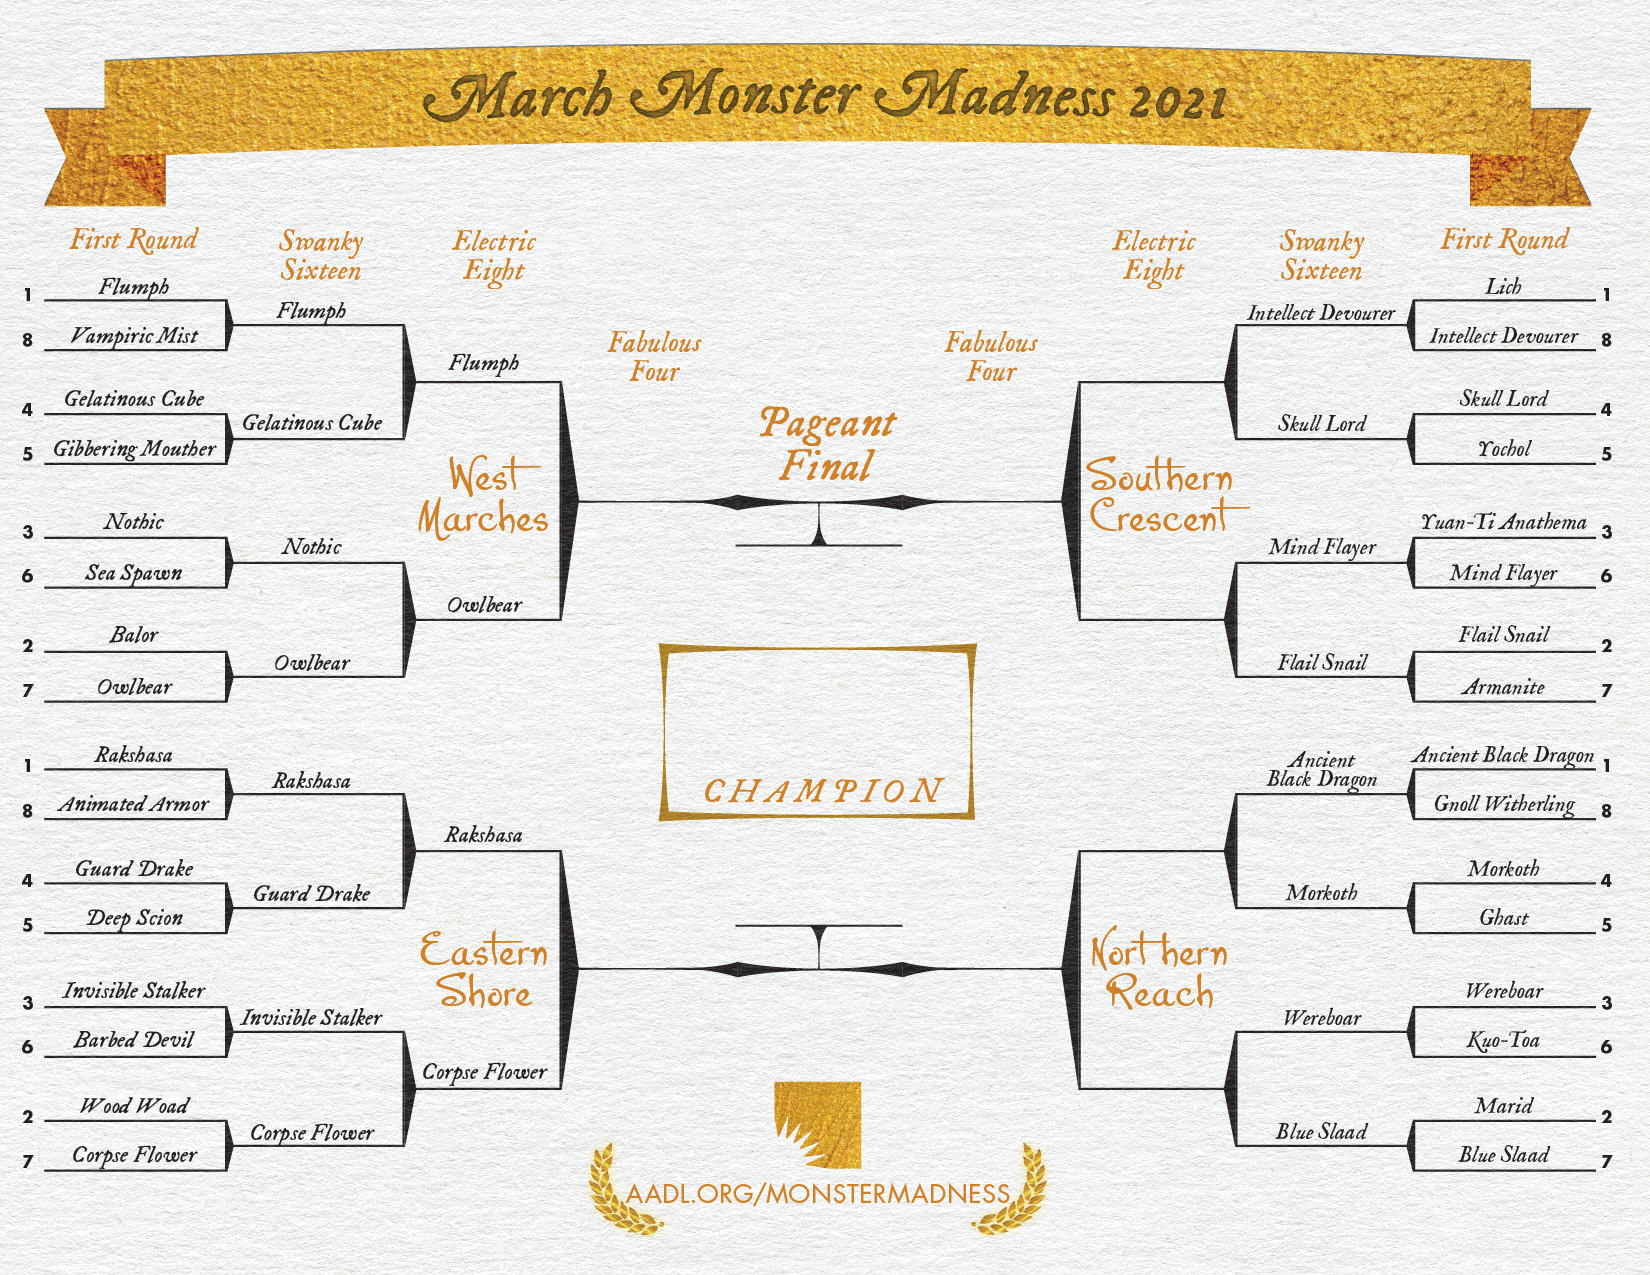 March Monster Madness Bracket 06